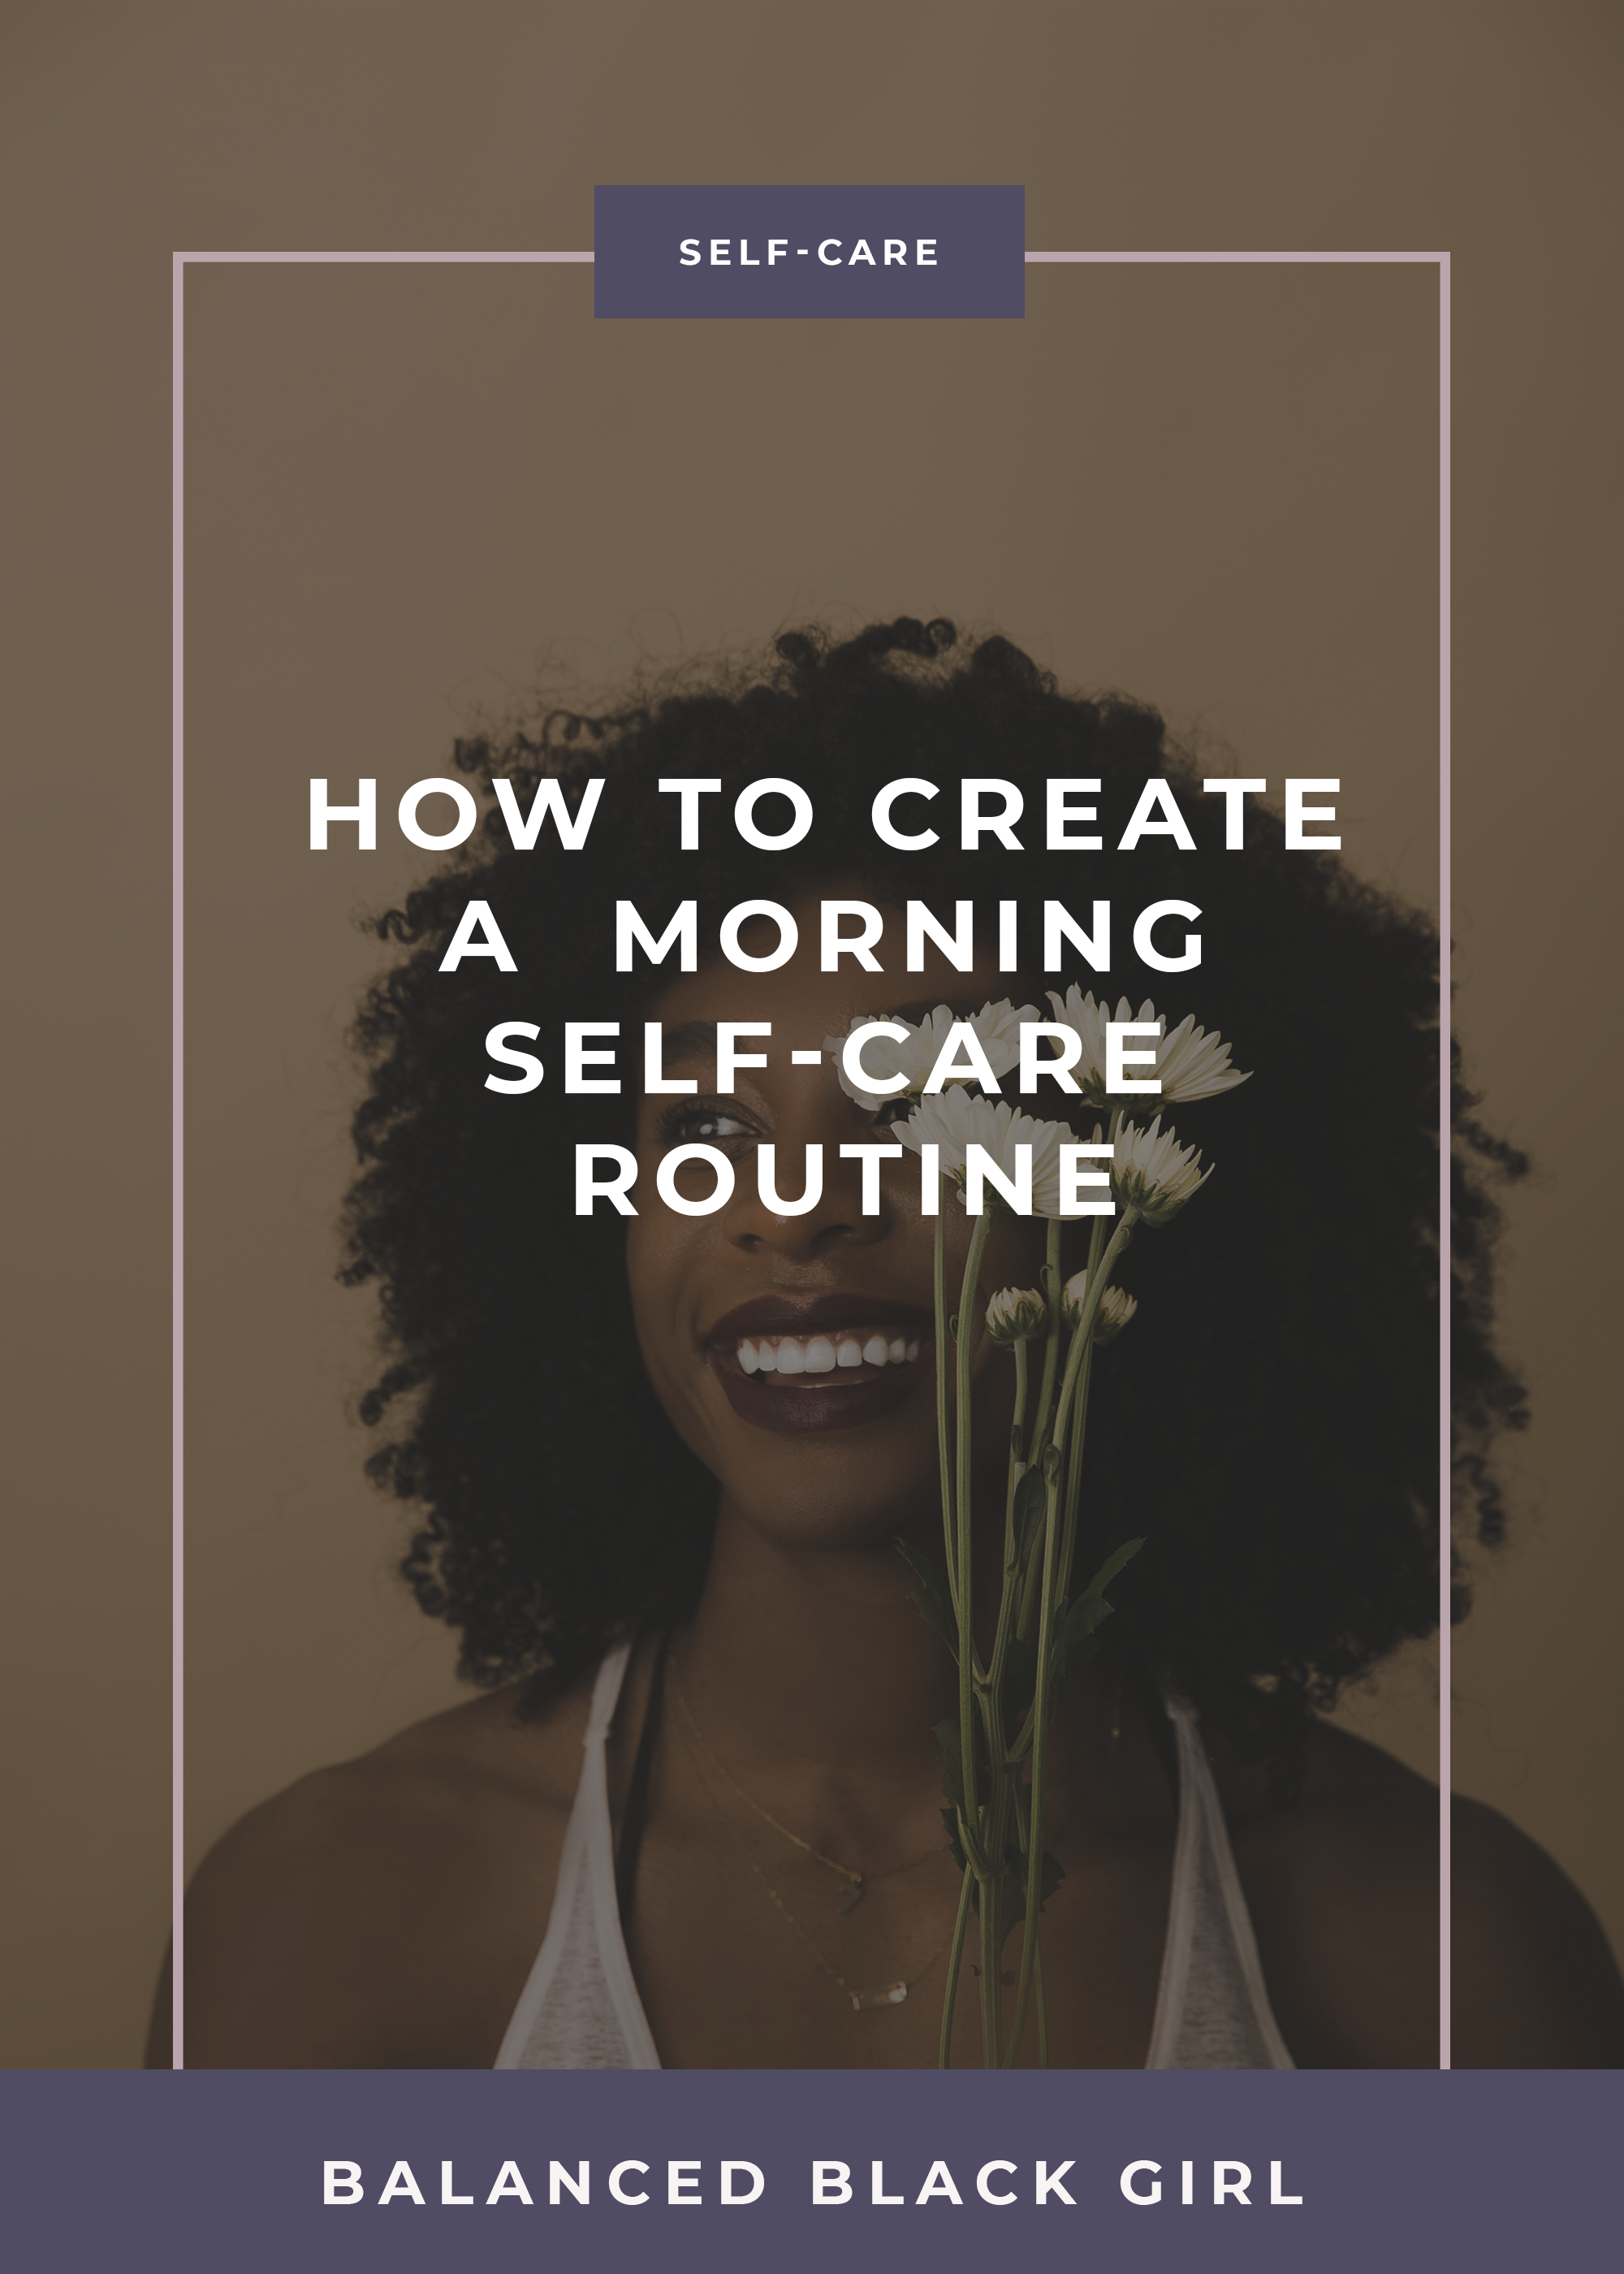 How to Create a Self-Care Morning Routine